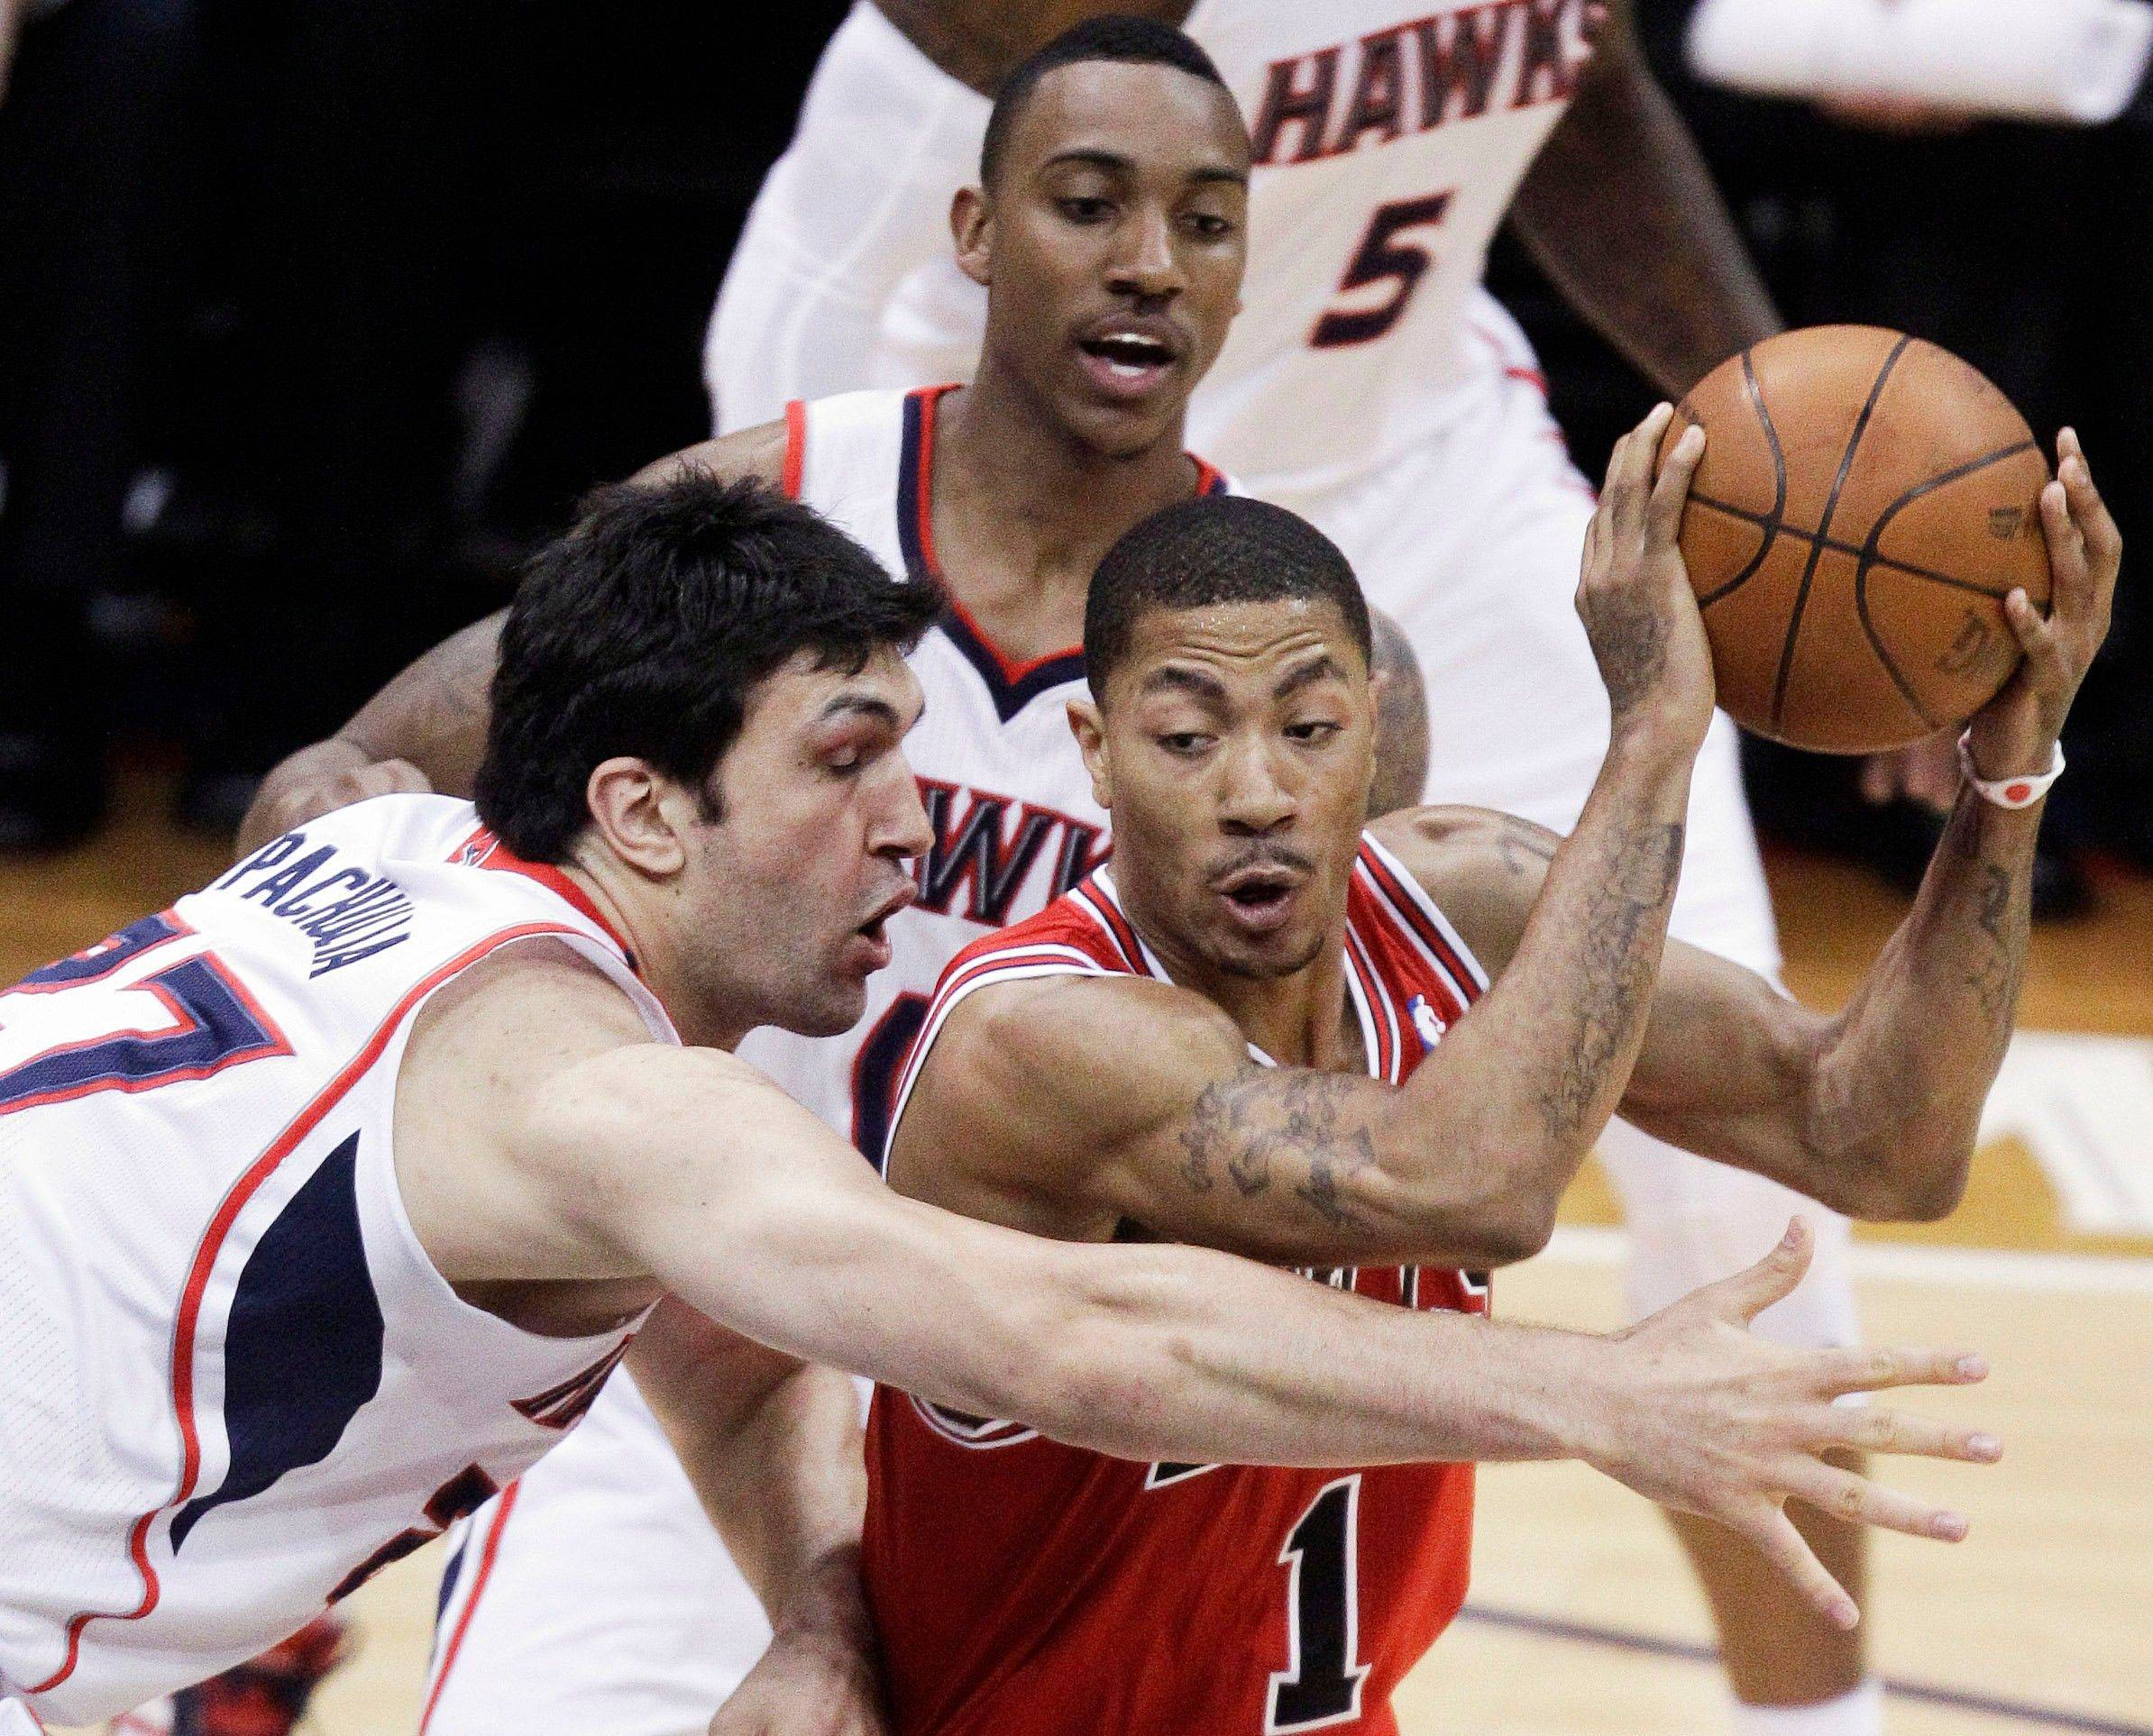 Derrick Rose (1) looks to pass under the defense of Atlanta Hawks guard Jeff Teague (0) and center Zaza Pachulia (27) in the second quarter of Game 4.